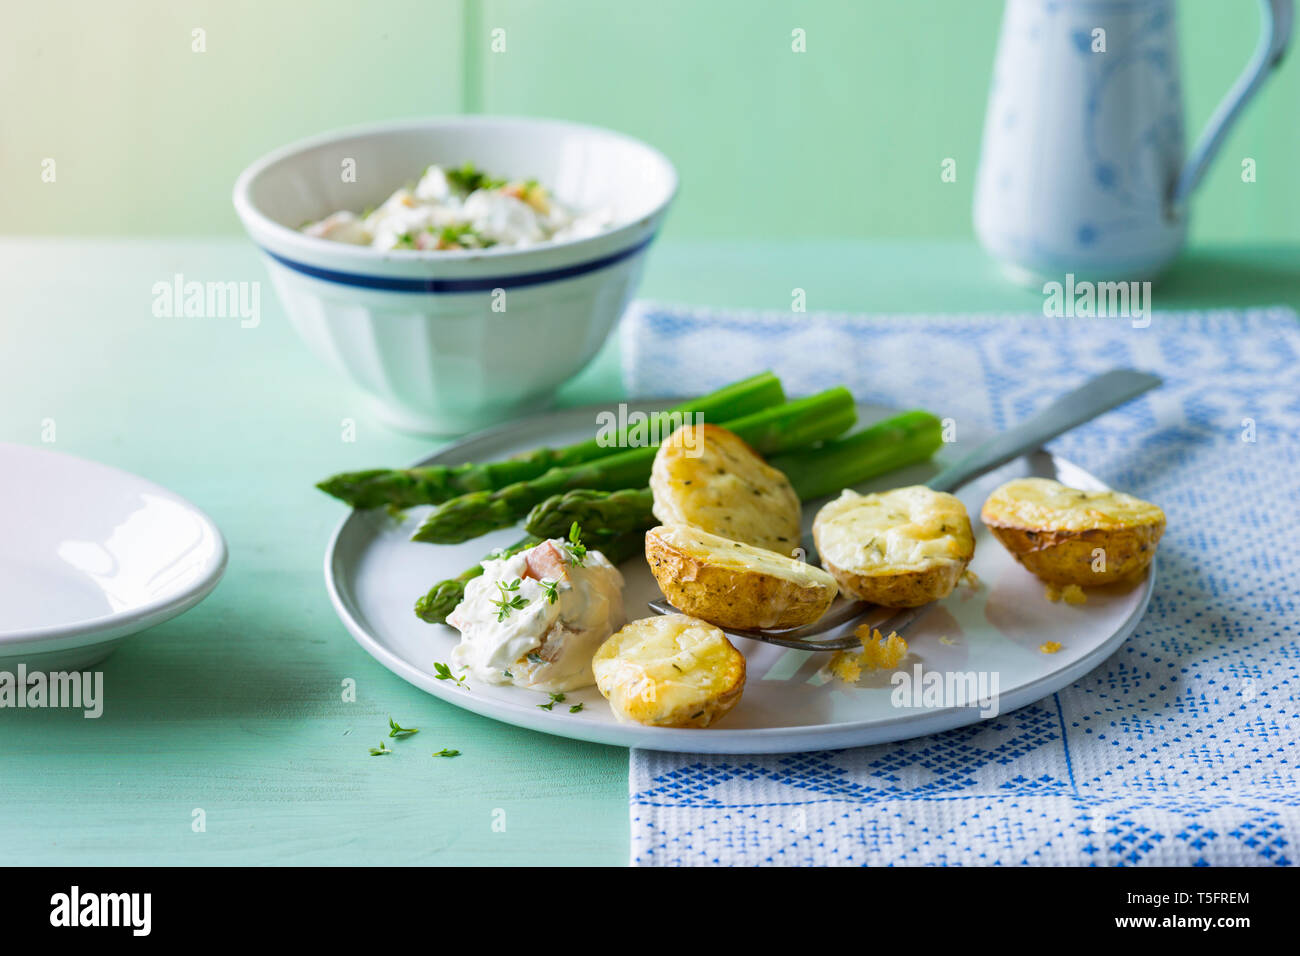 Baked potatoes with green asparagus and cream cheese, gratinated with cheese - Stock Image